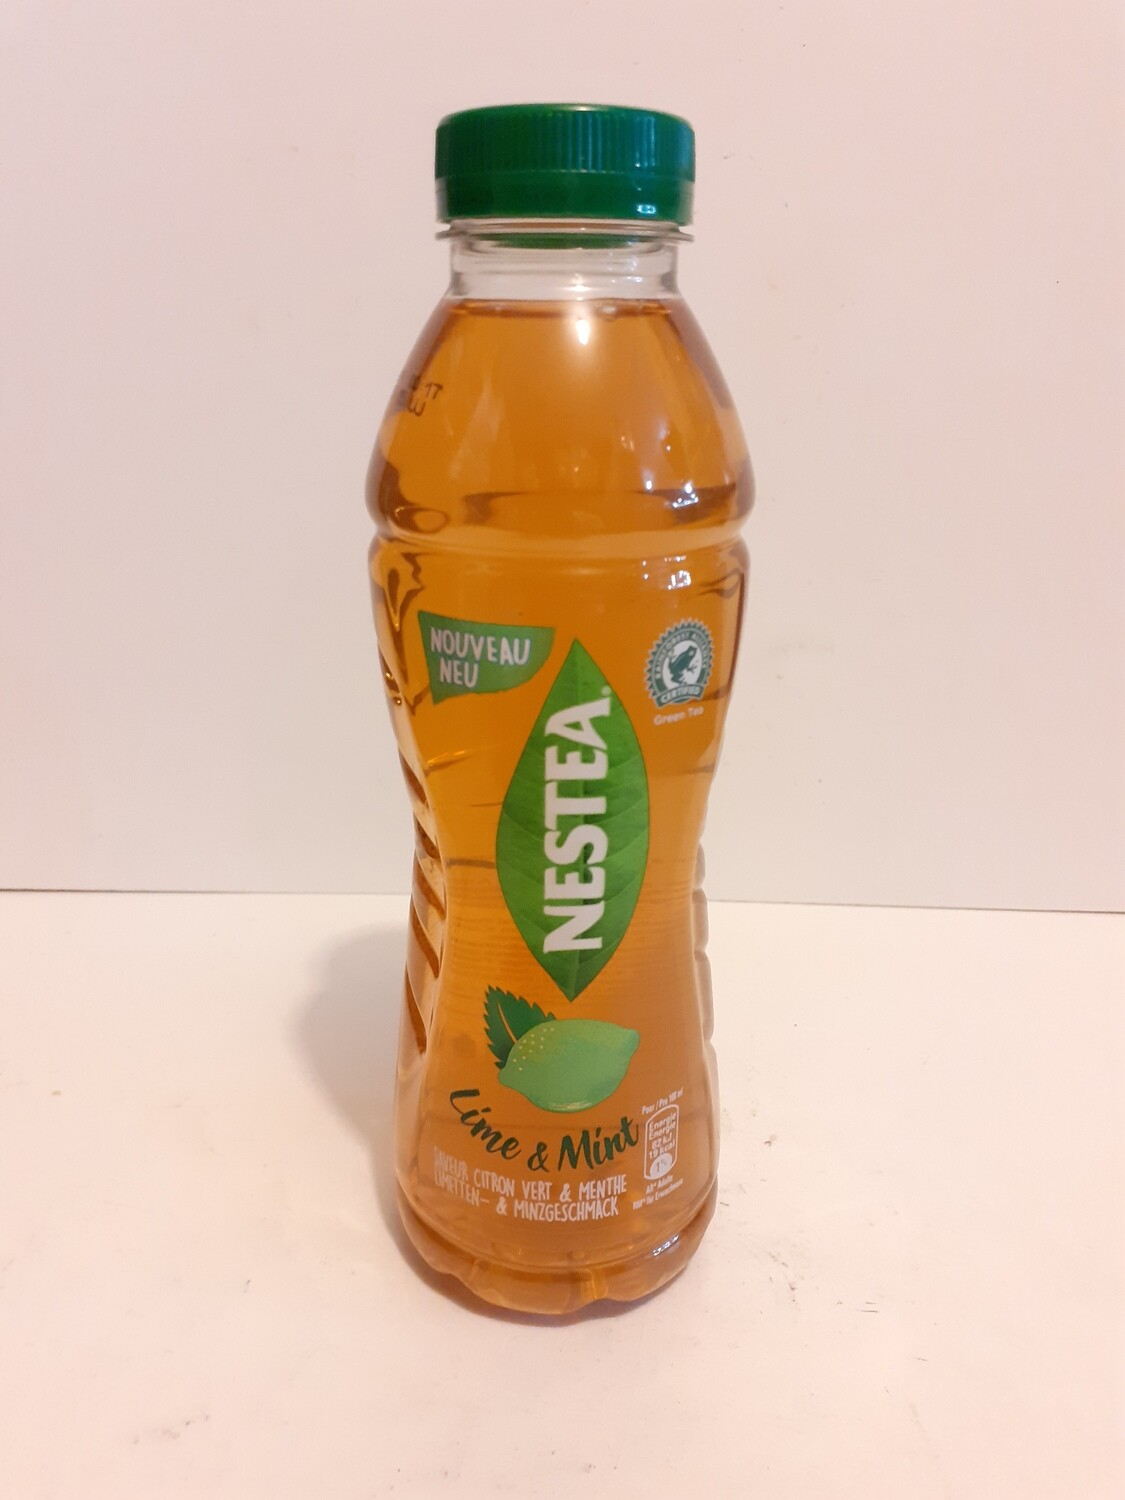 Lim & Mint NESTEA 50 cl